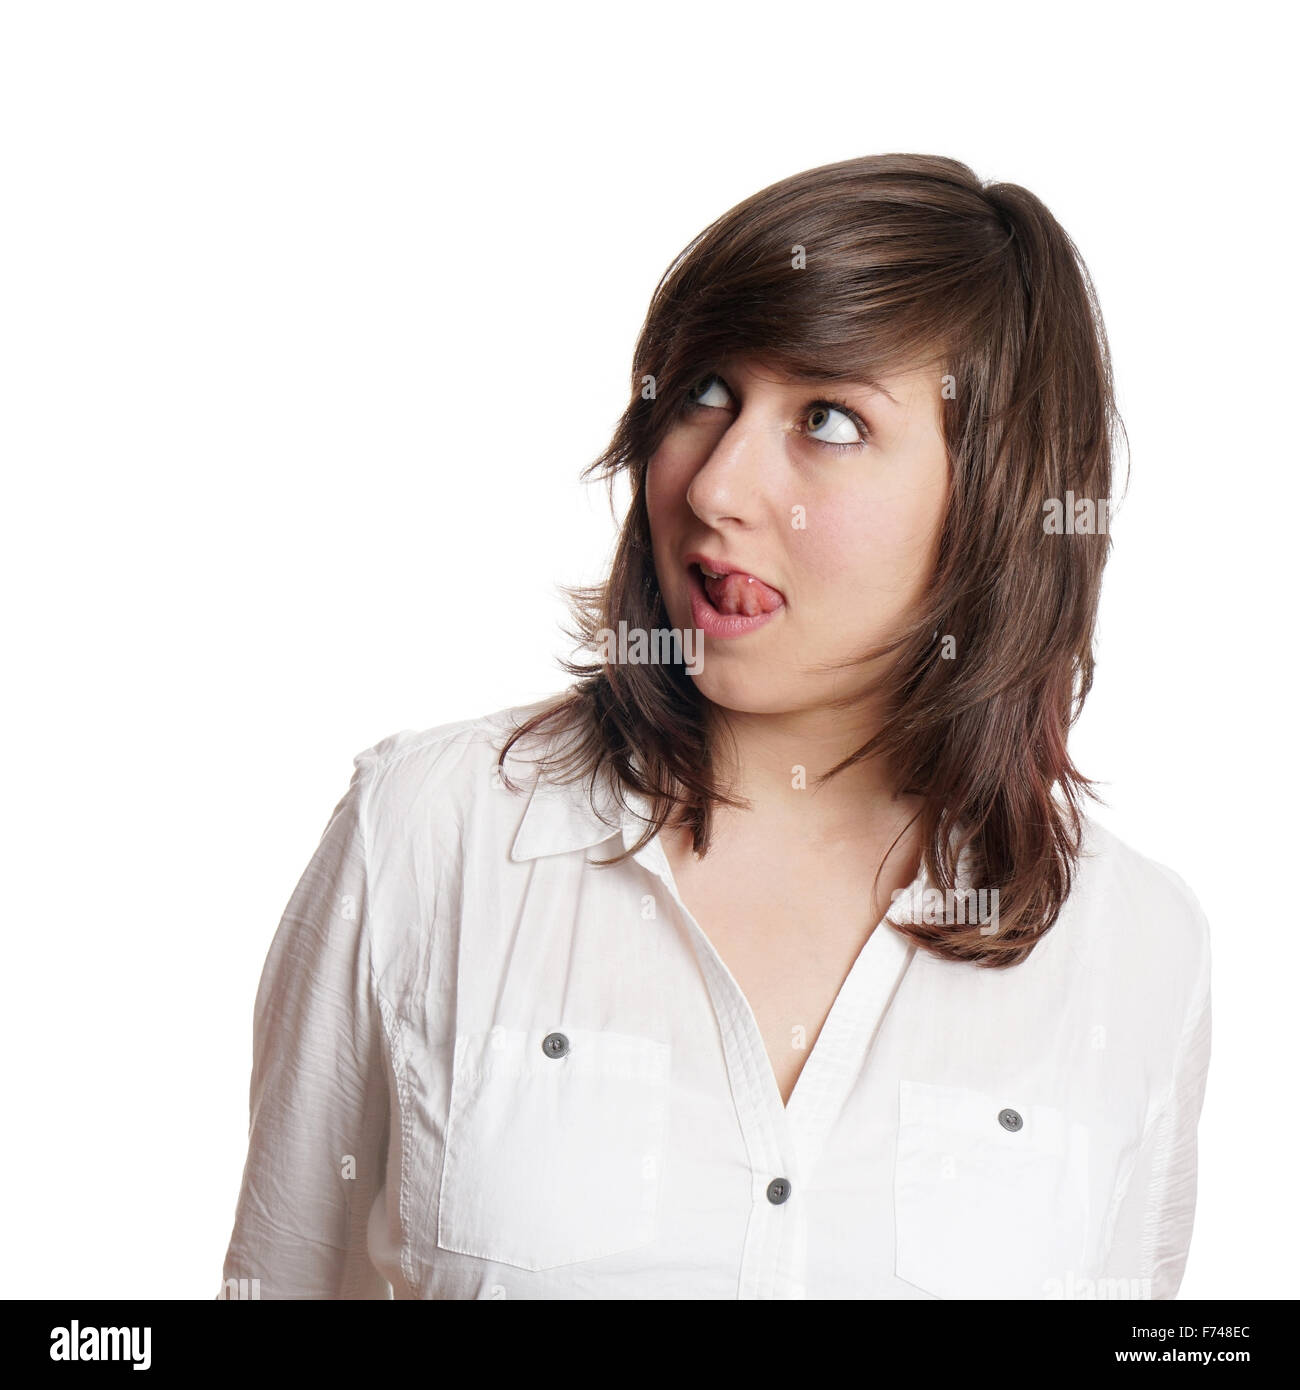 woman licking lips and looking up - Stock Image